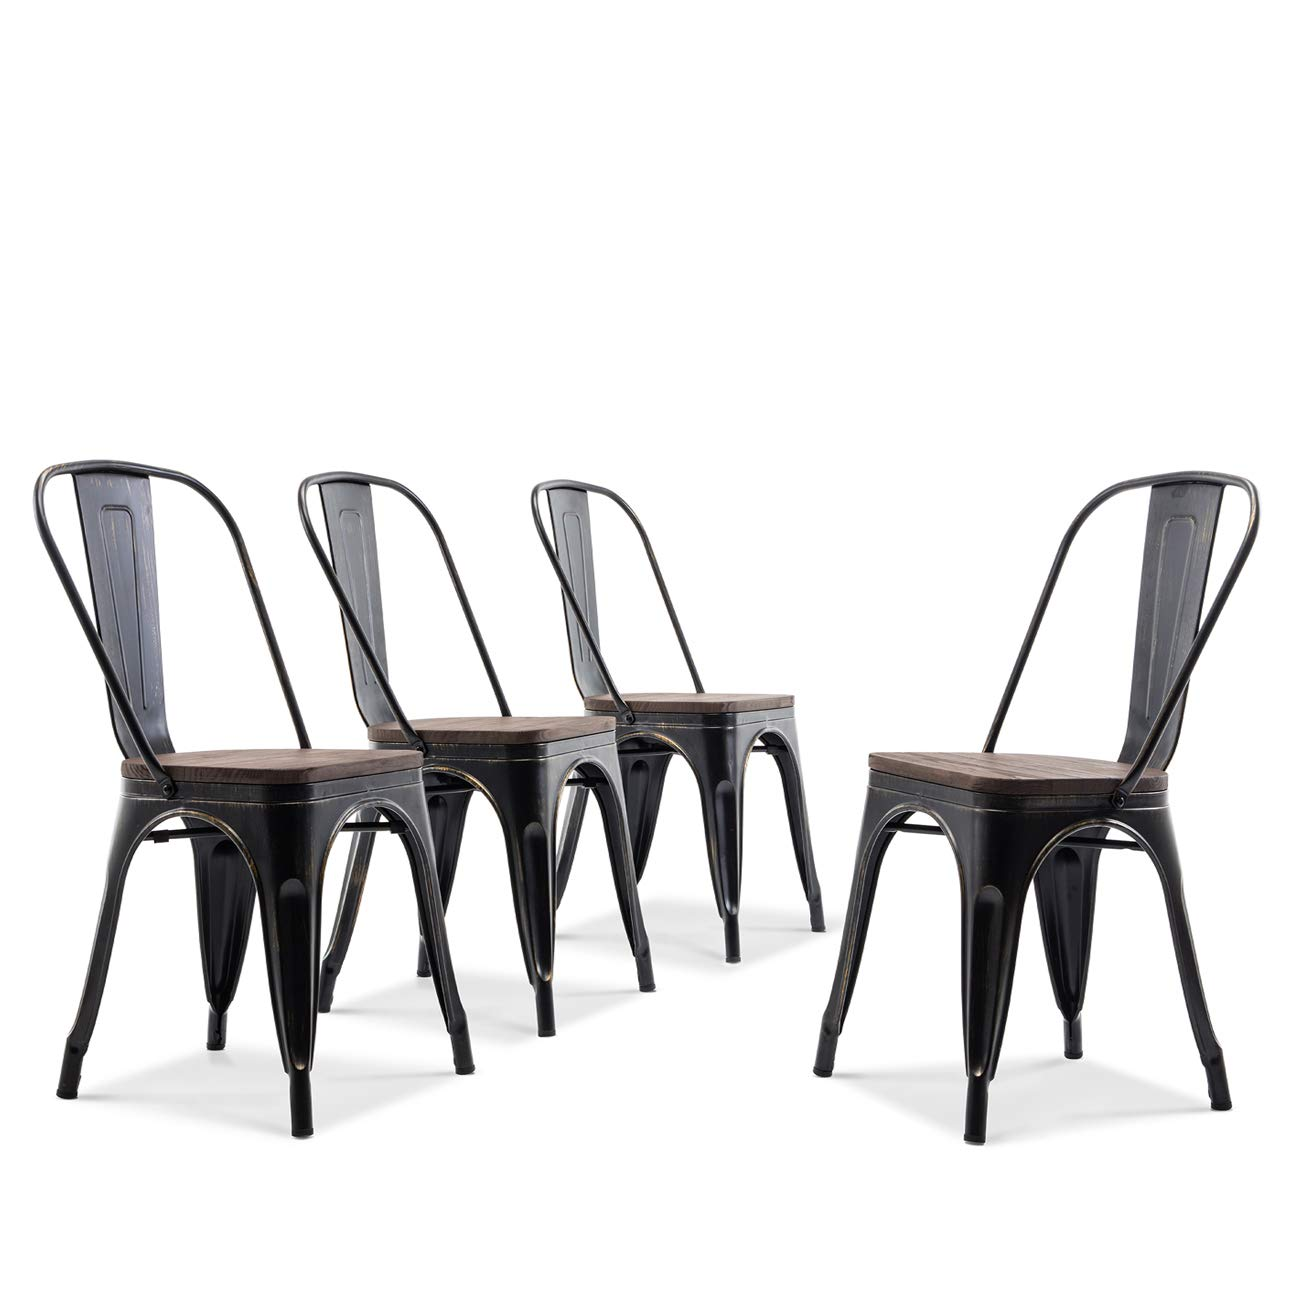 Amazon com belleze set of 4 wood seat cafe bar stool modern style metal industrial stackable bistro dining chairs antique black kitchen dining